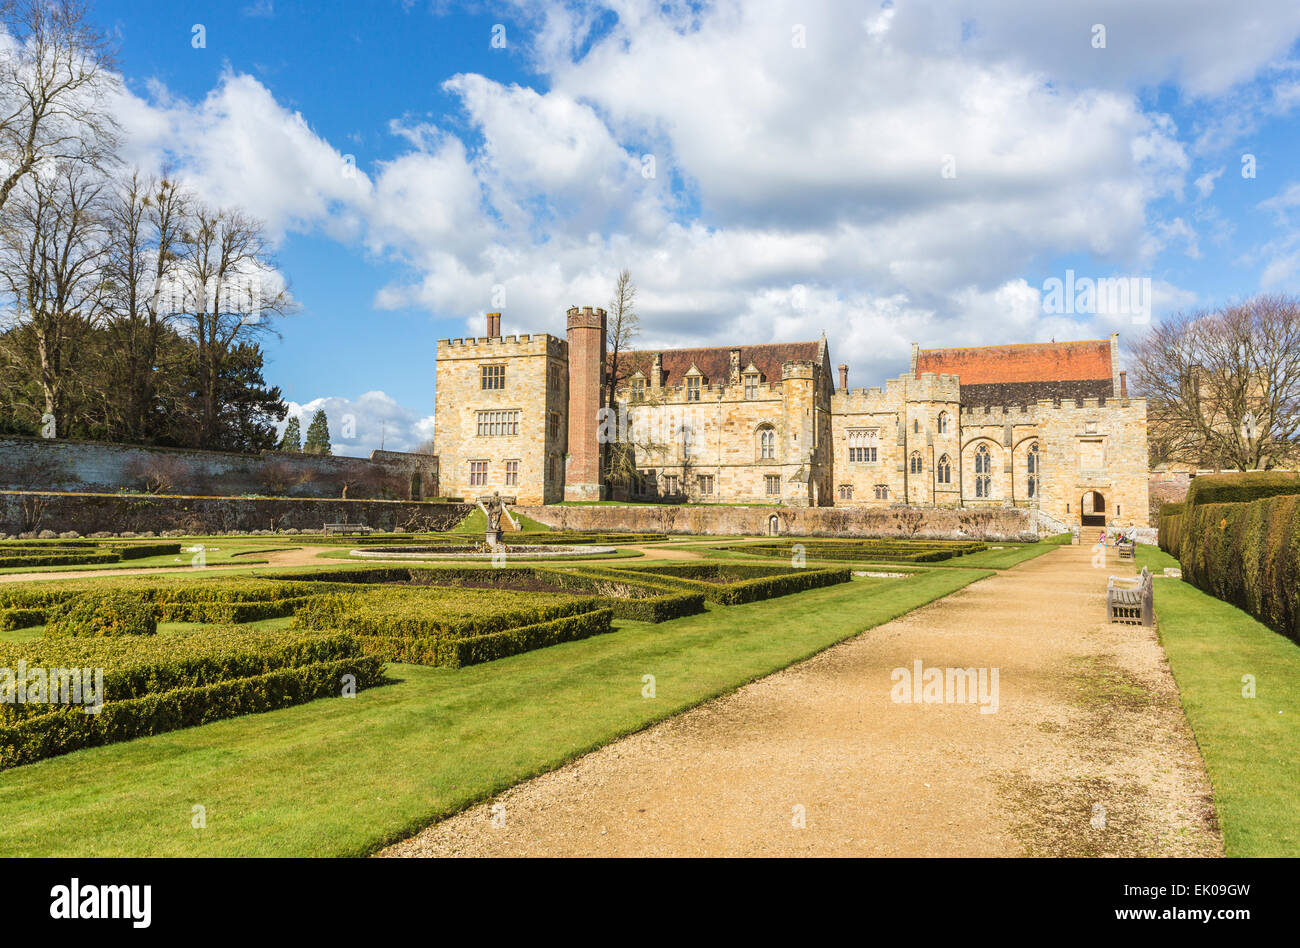 Penshurst Place, a 14th century country house, the seat of the Sidney family, near Tonbridge, Kent, UK - Stock Image